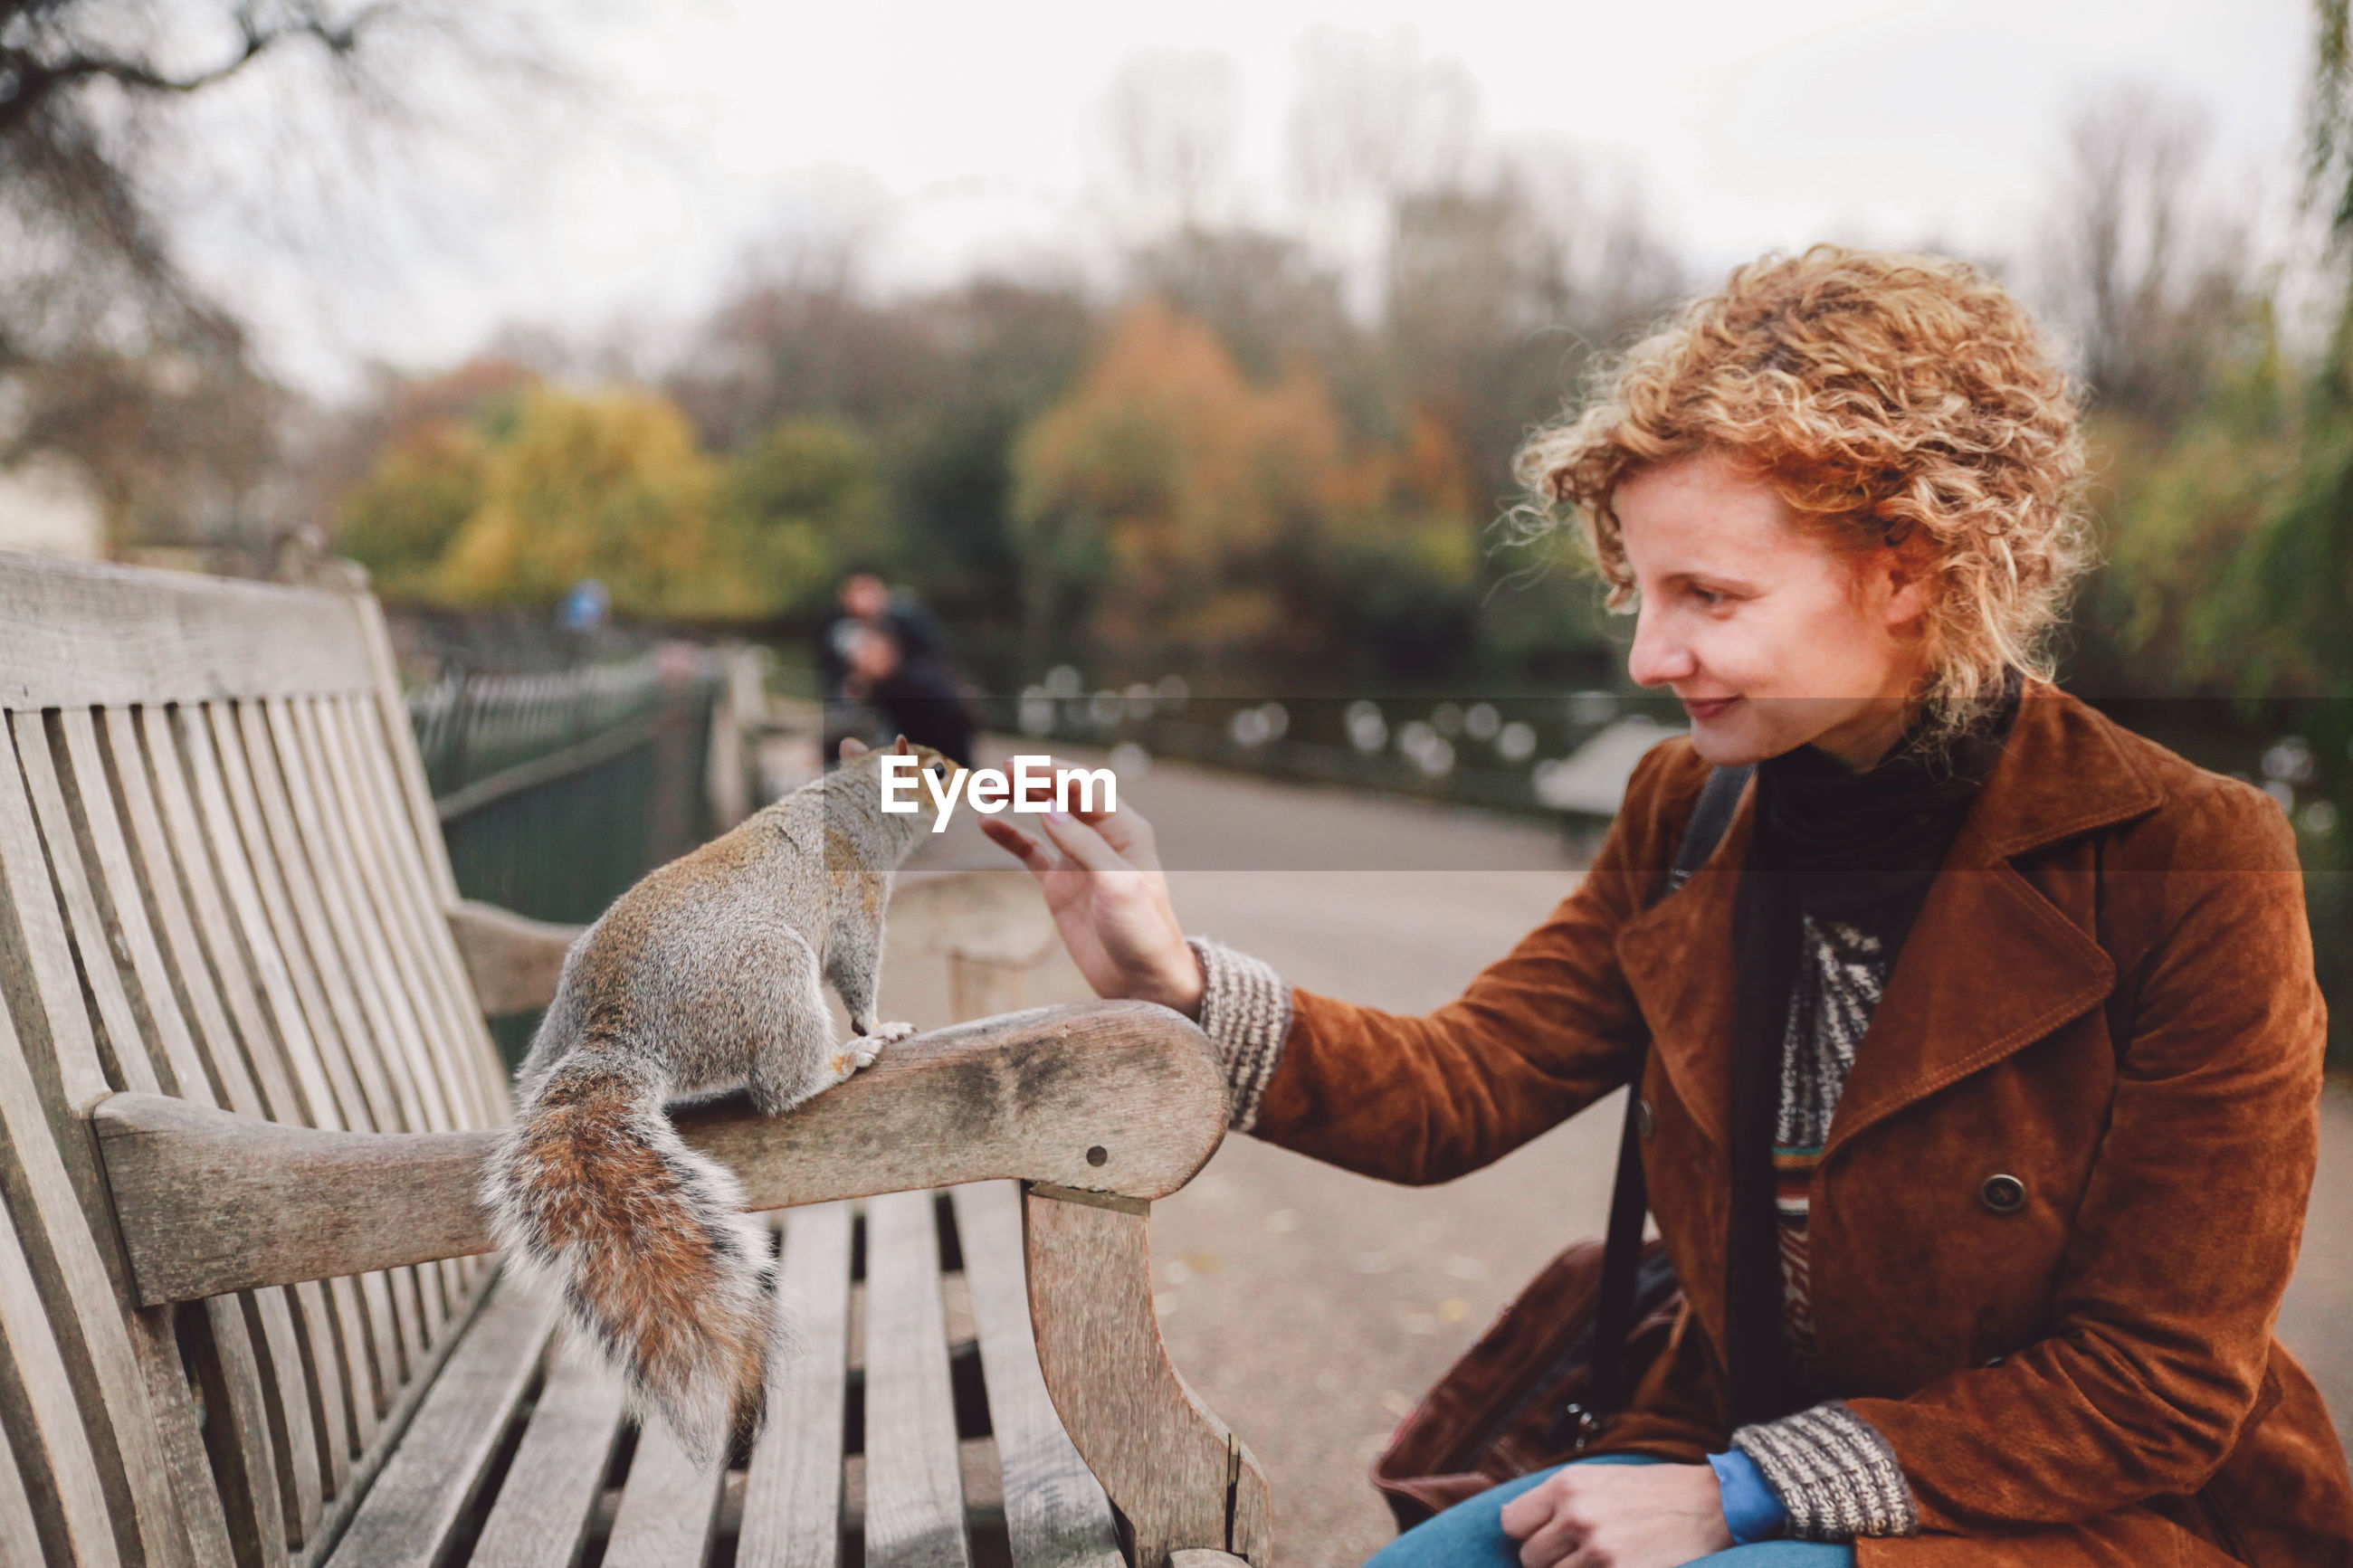 Smiling woman playing with squirrel on bench in park